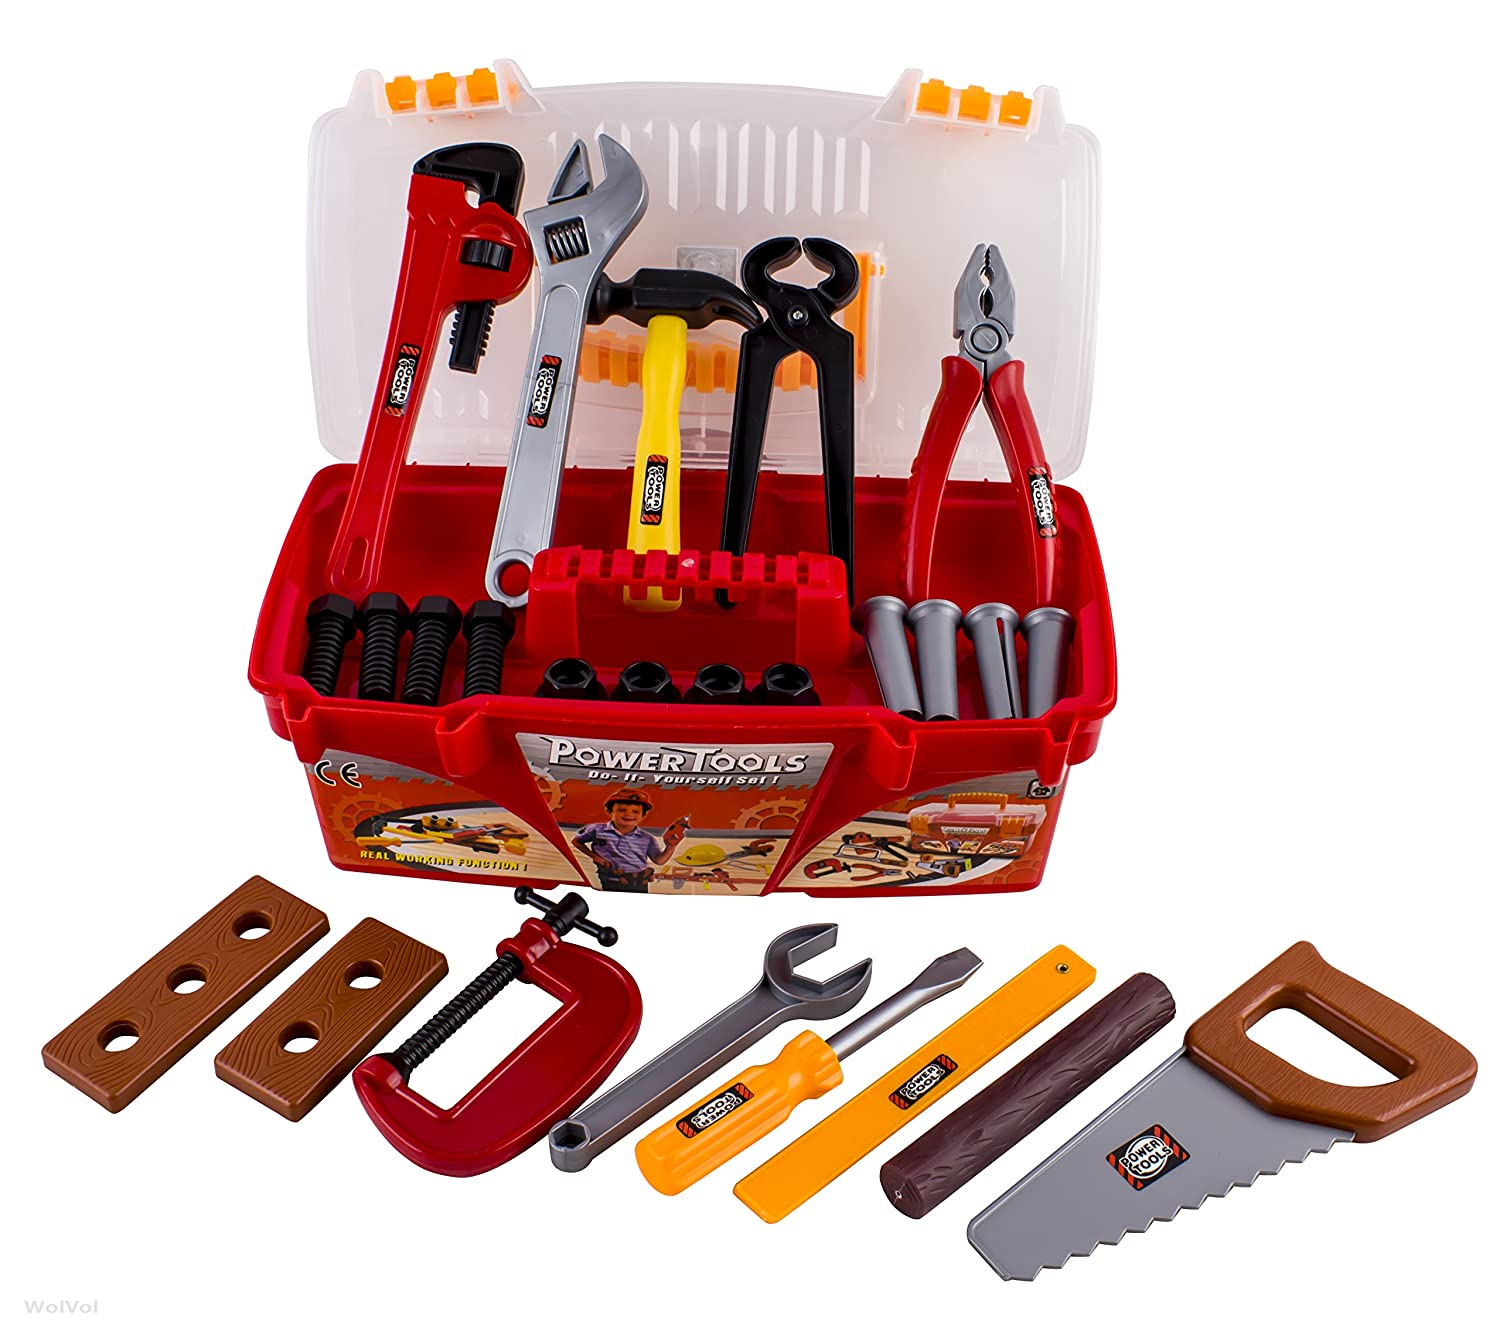 Amazon WolVol 26 piece Tool Box Set with Removable Tool Tray